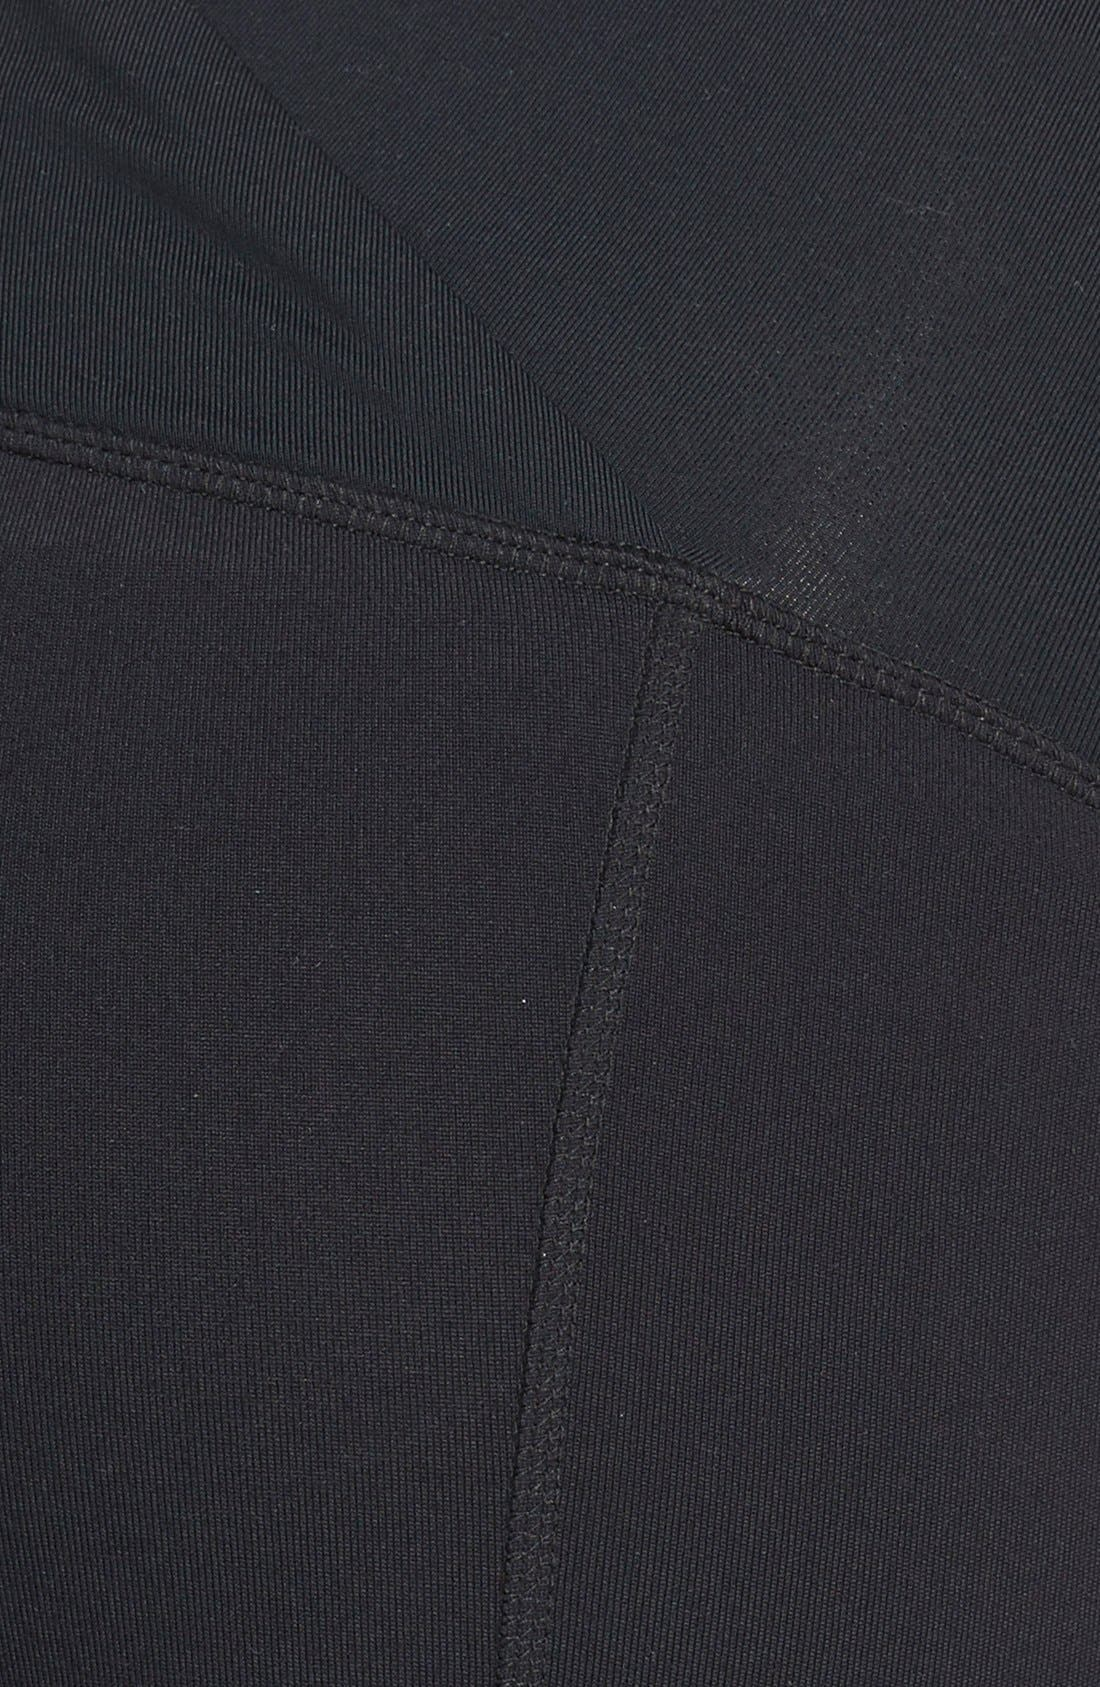 Alternate Image 3  - Ingrid & Isabel® Active Maternity Capri Pants with Crossover Panel